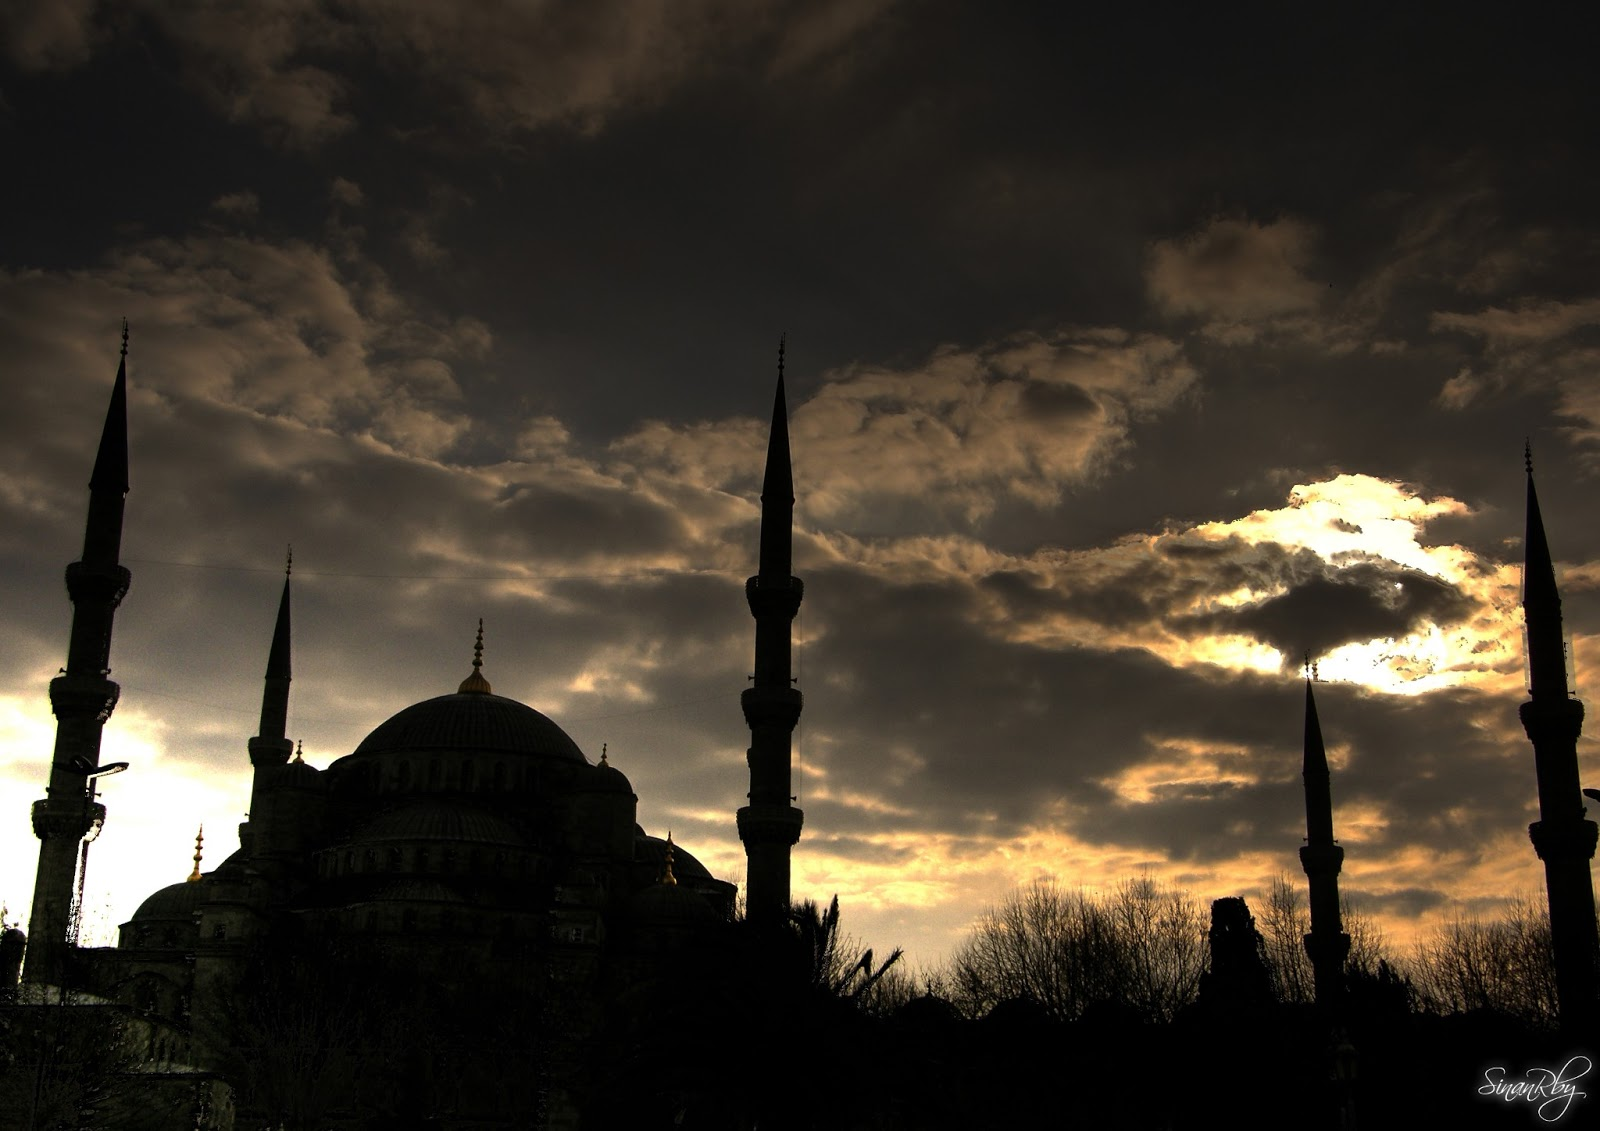 http://3.bp.blogspot.com/-1q2cZZOhJqs/UV6fpy5tr3I/AAAAAAAACnA/M1Q4yCI4y0A/s1600/silhouette_of_the_blue_mosque_by_sinanrby-d39wwn3.jpg